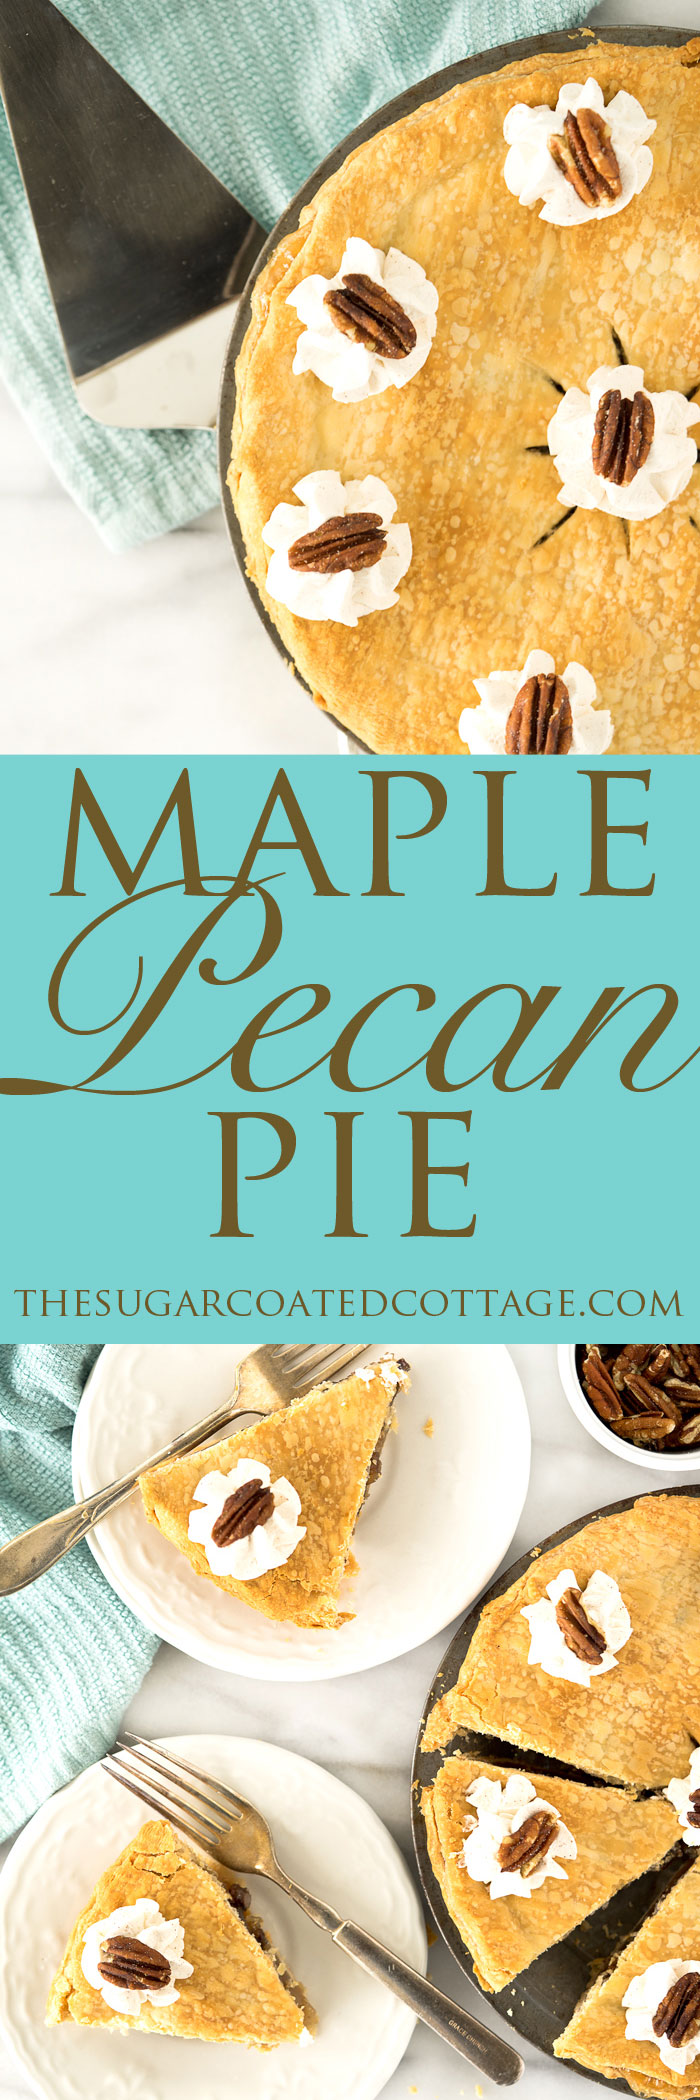 Simple Maple Pecan Pie with Cinnamon Whipped Cream. A traditional yet simple pie for any gathering. | thesugarcoatedcottage.com